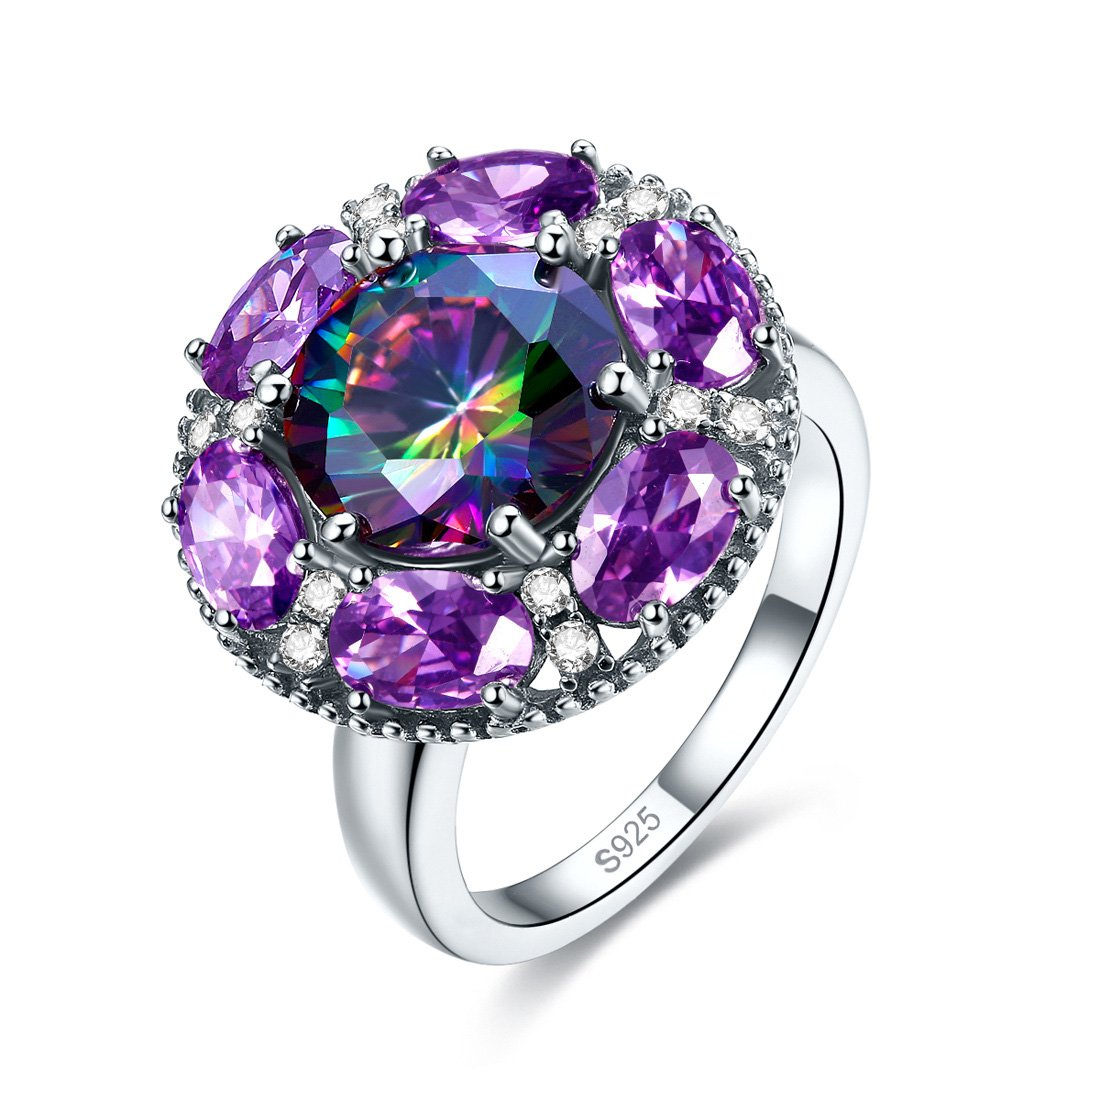 Jrose Created Amethyst/Ruby Halo Cocktail Ring in 925 Sterling Silver